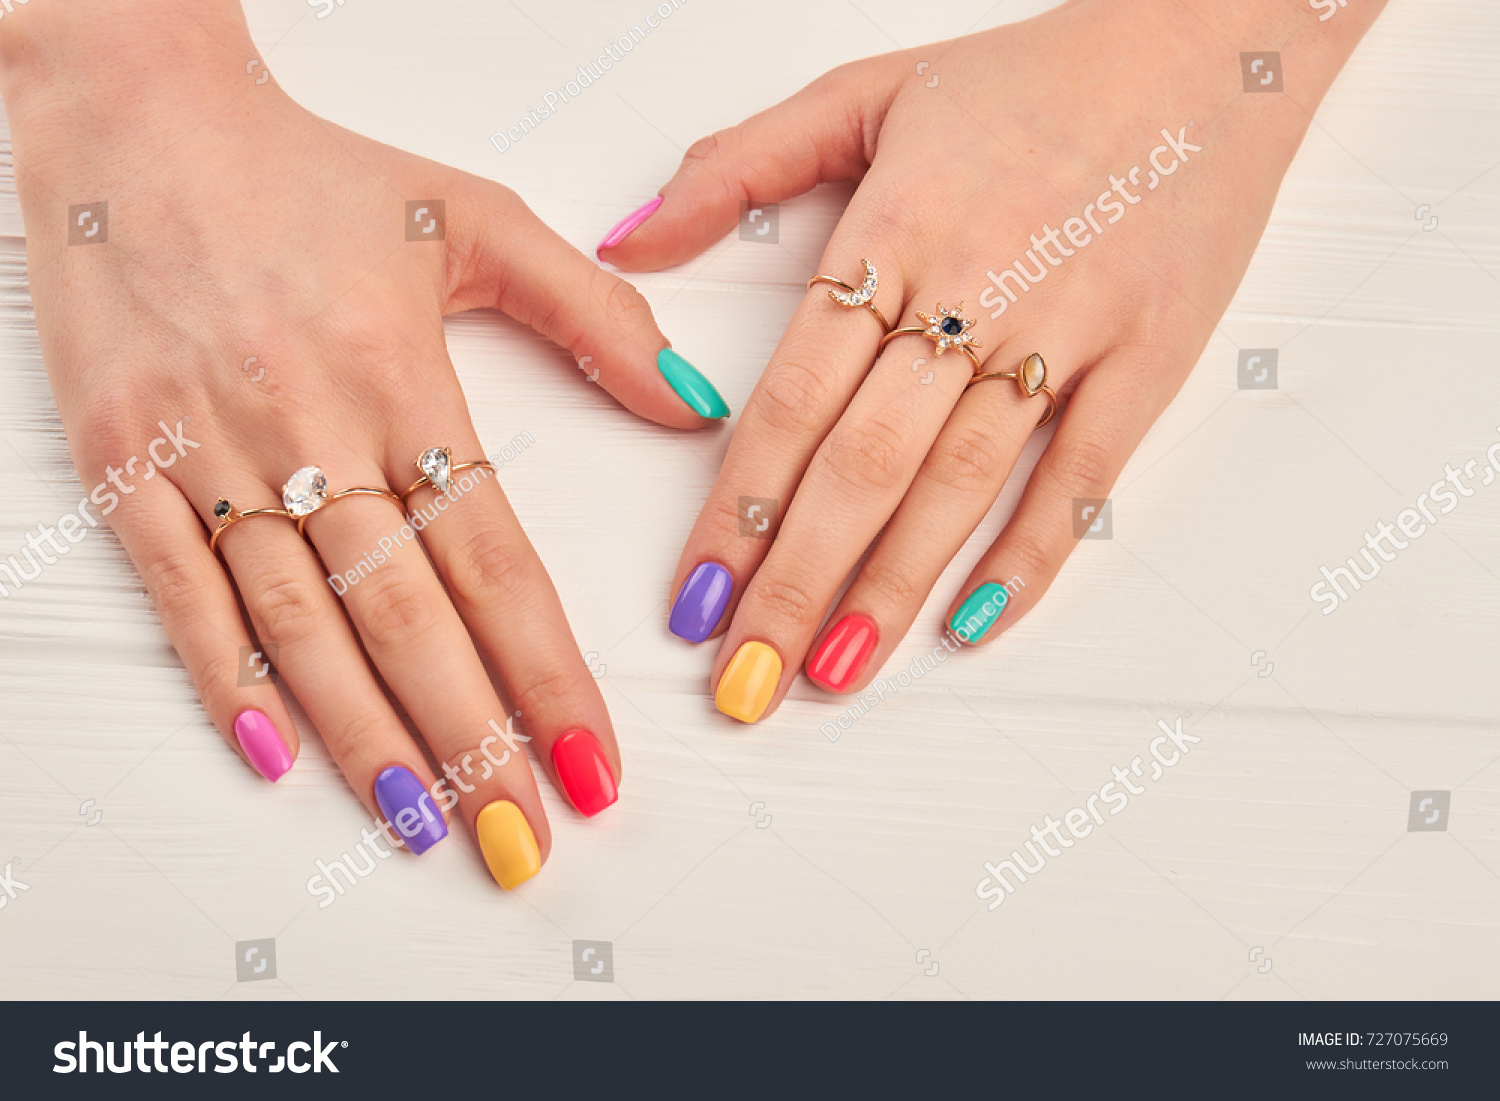 Manicured Hands Young Woman Summer Manicure Stock Photo 727075669 ...